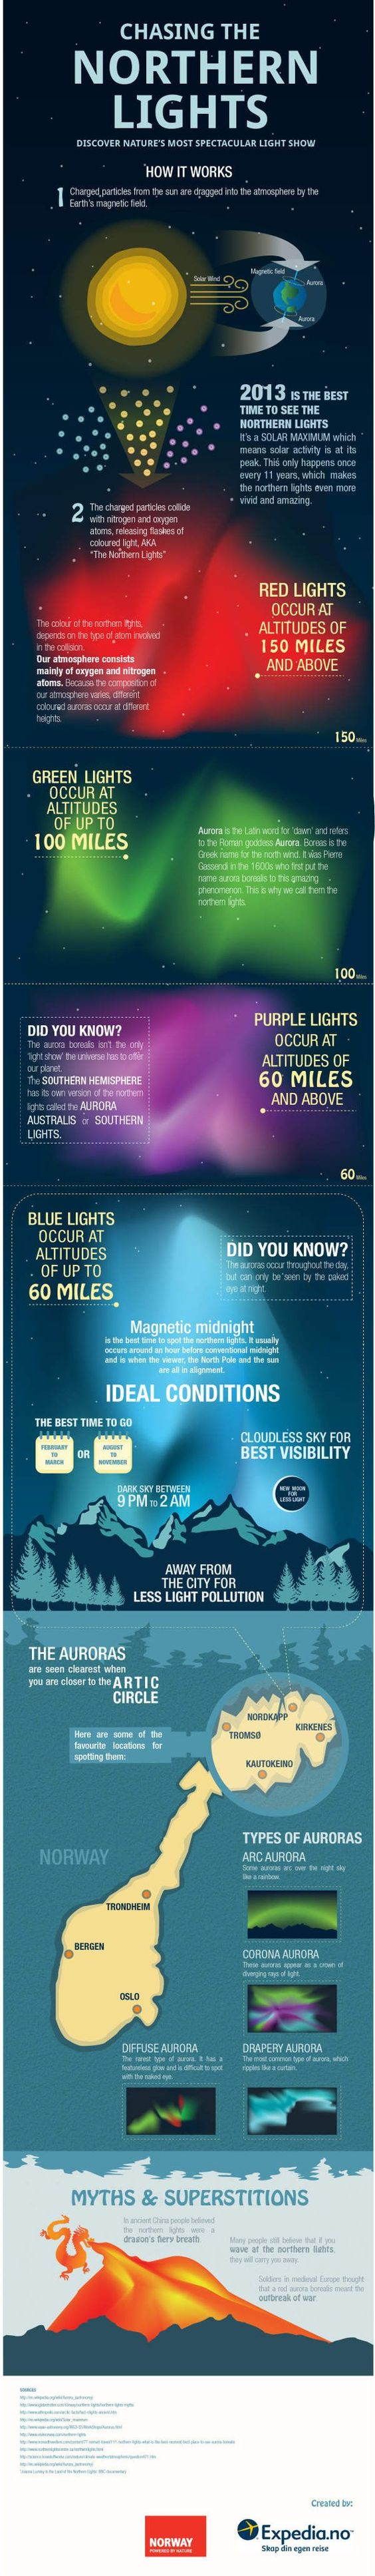 Infographic of the Northern Lights: how they occur, where and when to see them. #NorthernLights#ScanAdventures